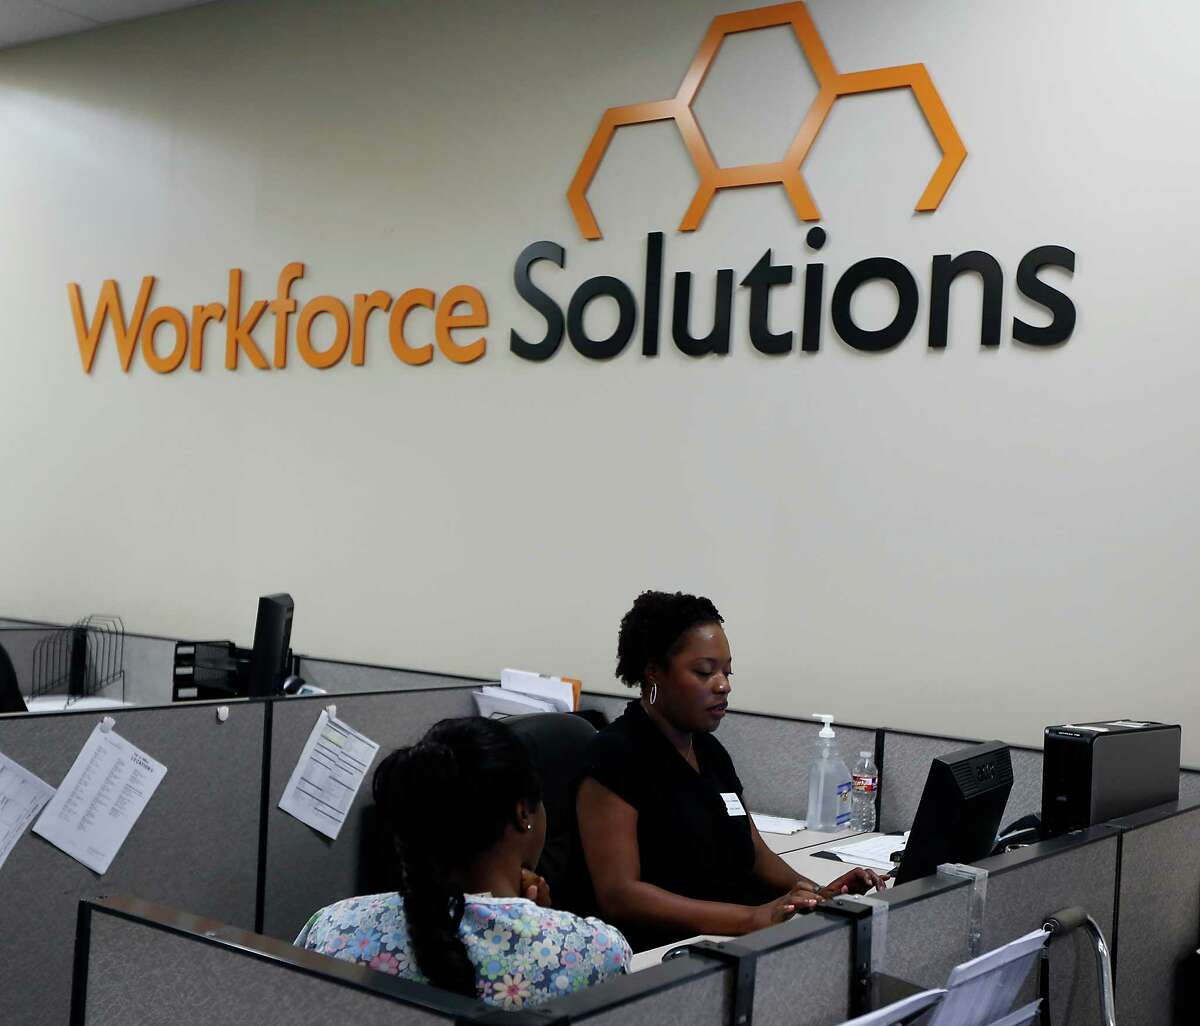 The downturn in the economy has kept Gulf Coast Workforce Solutions, at least, busier than usual.